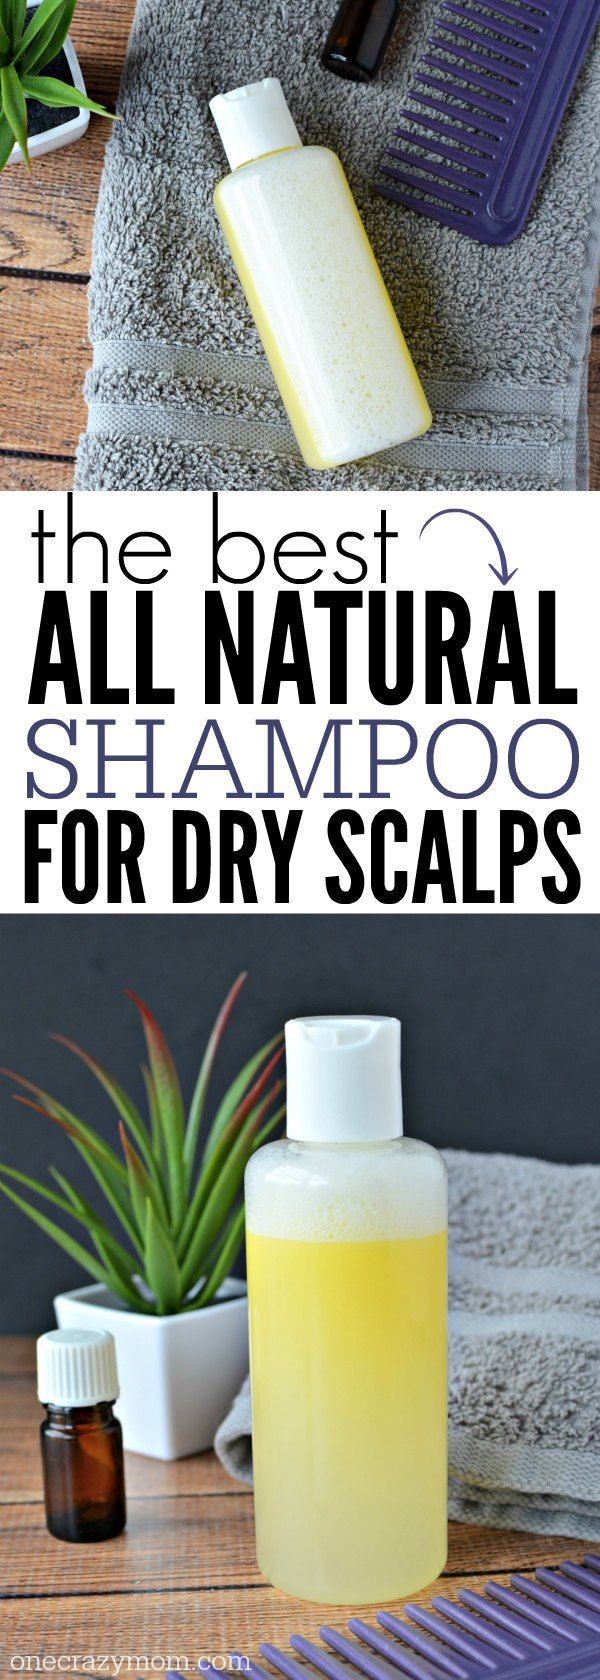 The best Natural Dandruff Shampoo. It is The best treatment for dry scalp and dandruff. Try this Easy Homemade Dry scalp shampoo today!